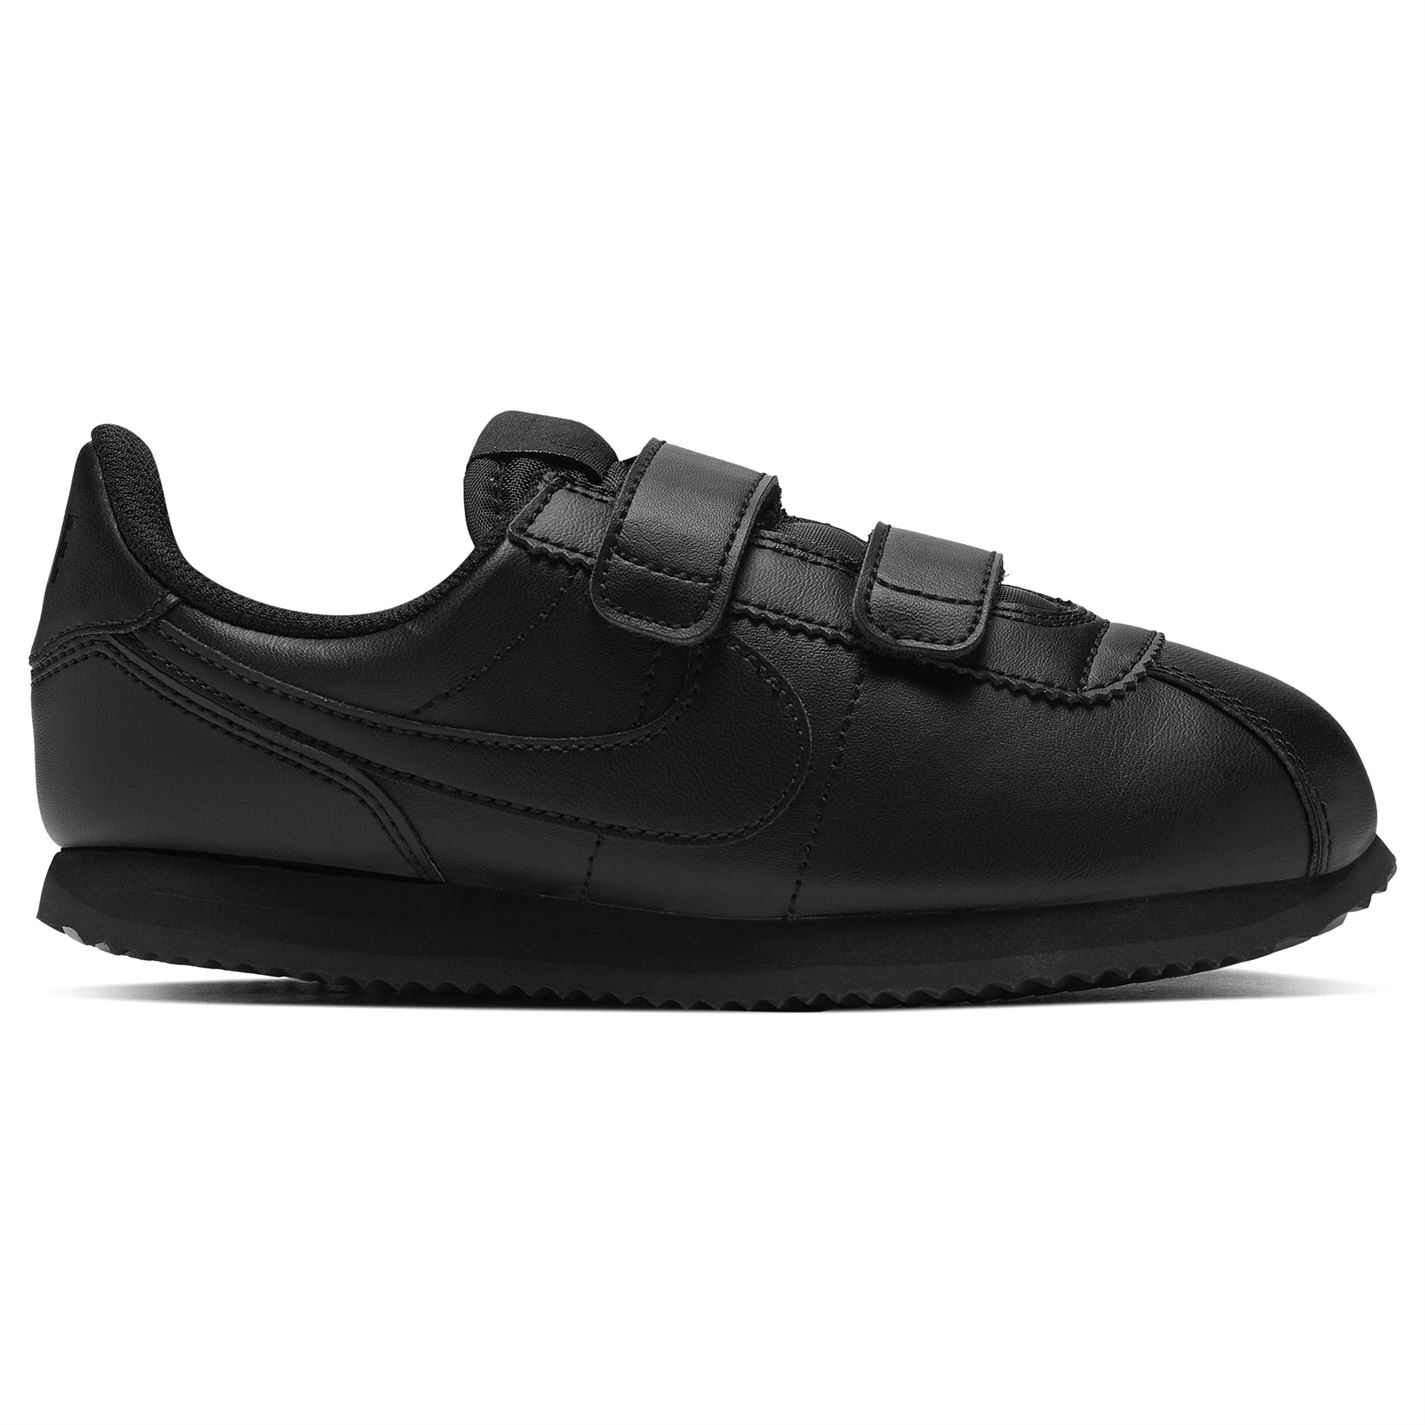 Nike Nike Cortez Basic SL (PS) Pre-School Shoe Triple Black